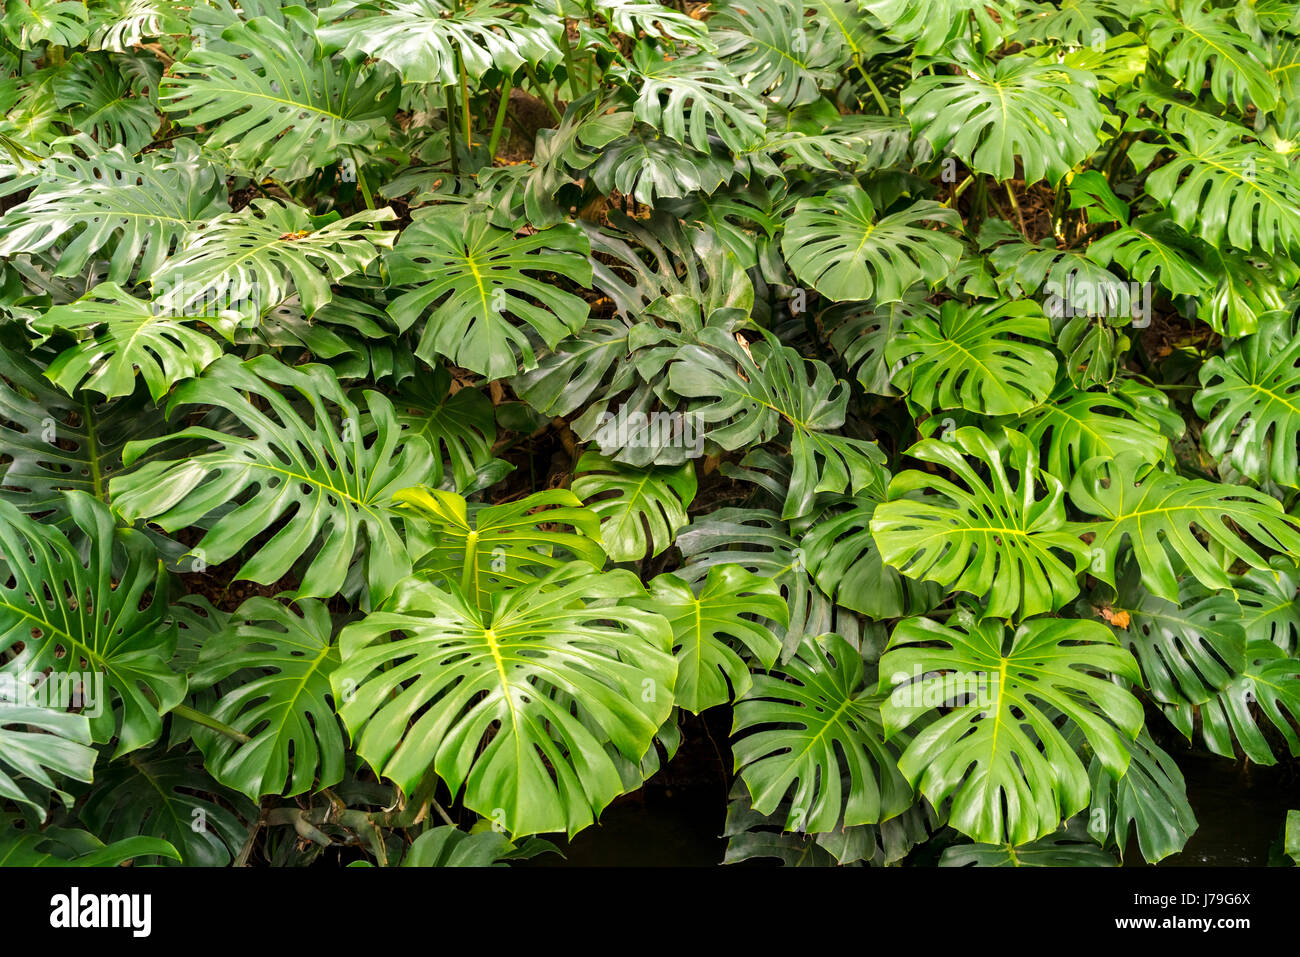 https://c7.alamy.com/comp/J79G6X/monstera-deliciosa-or-swiss-cheese-plant-in-the-malaga-botanical-garden-J79G6X.jpg